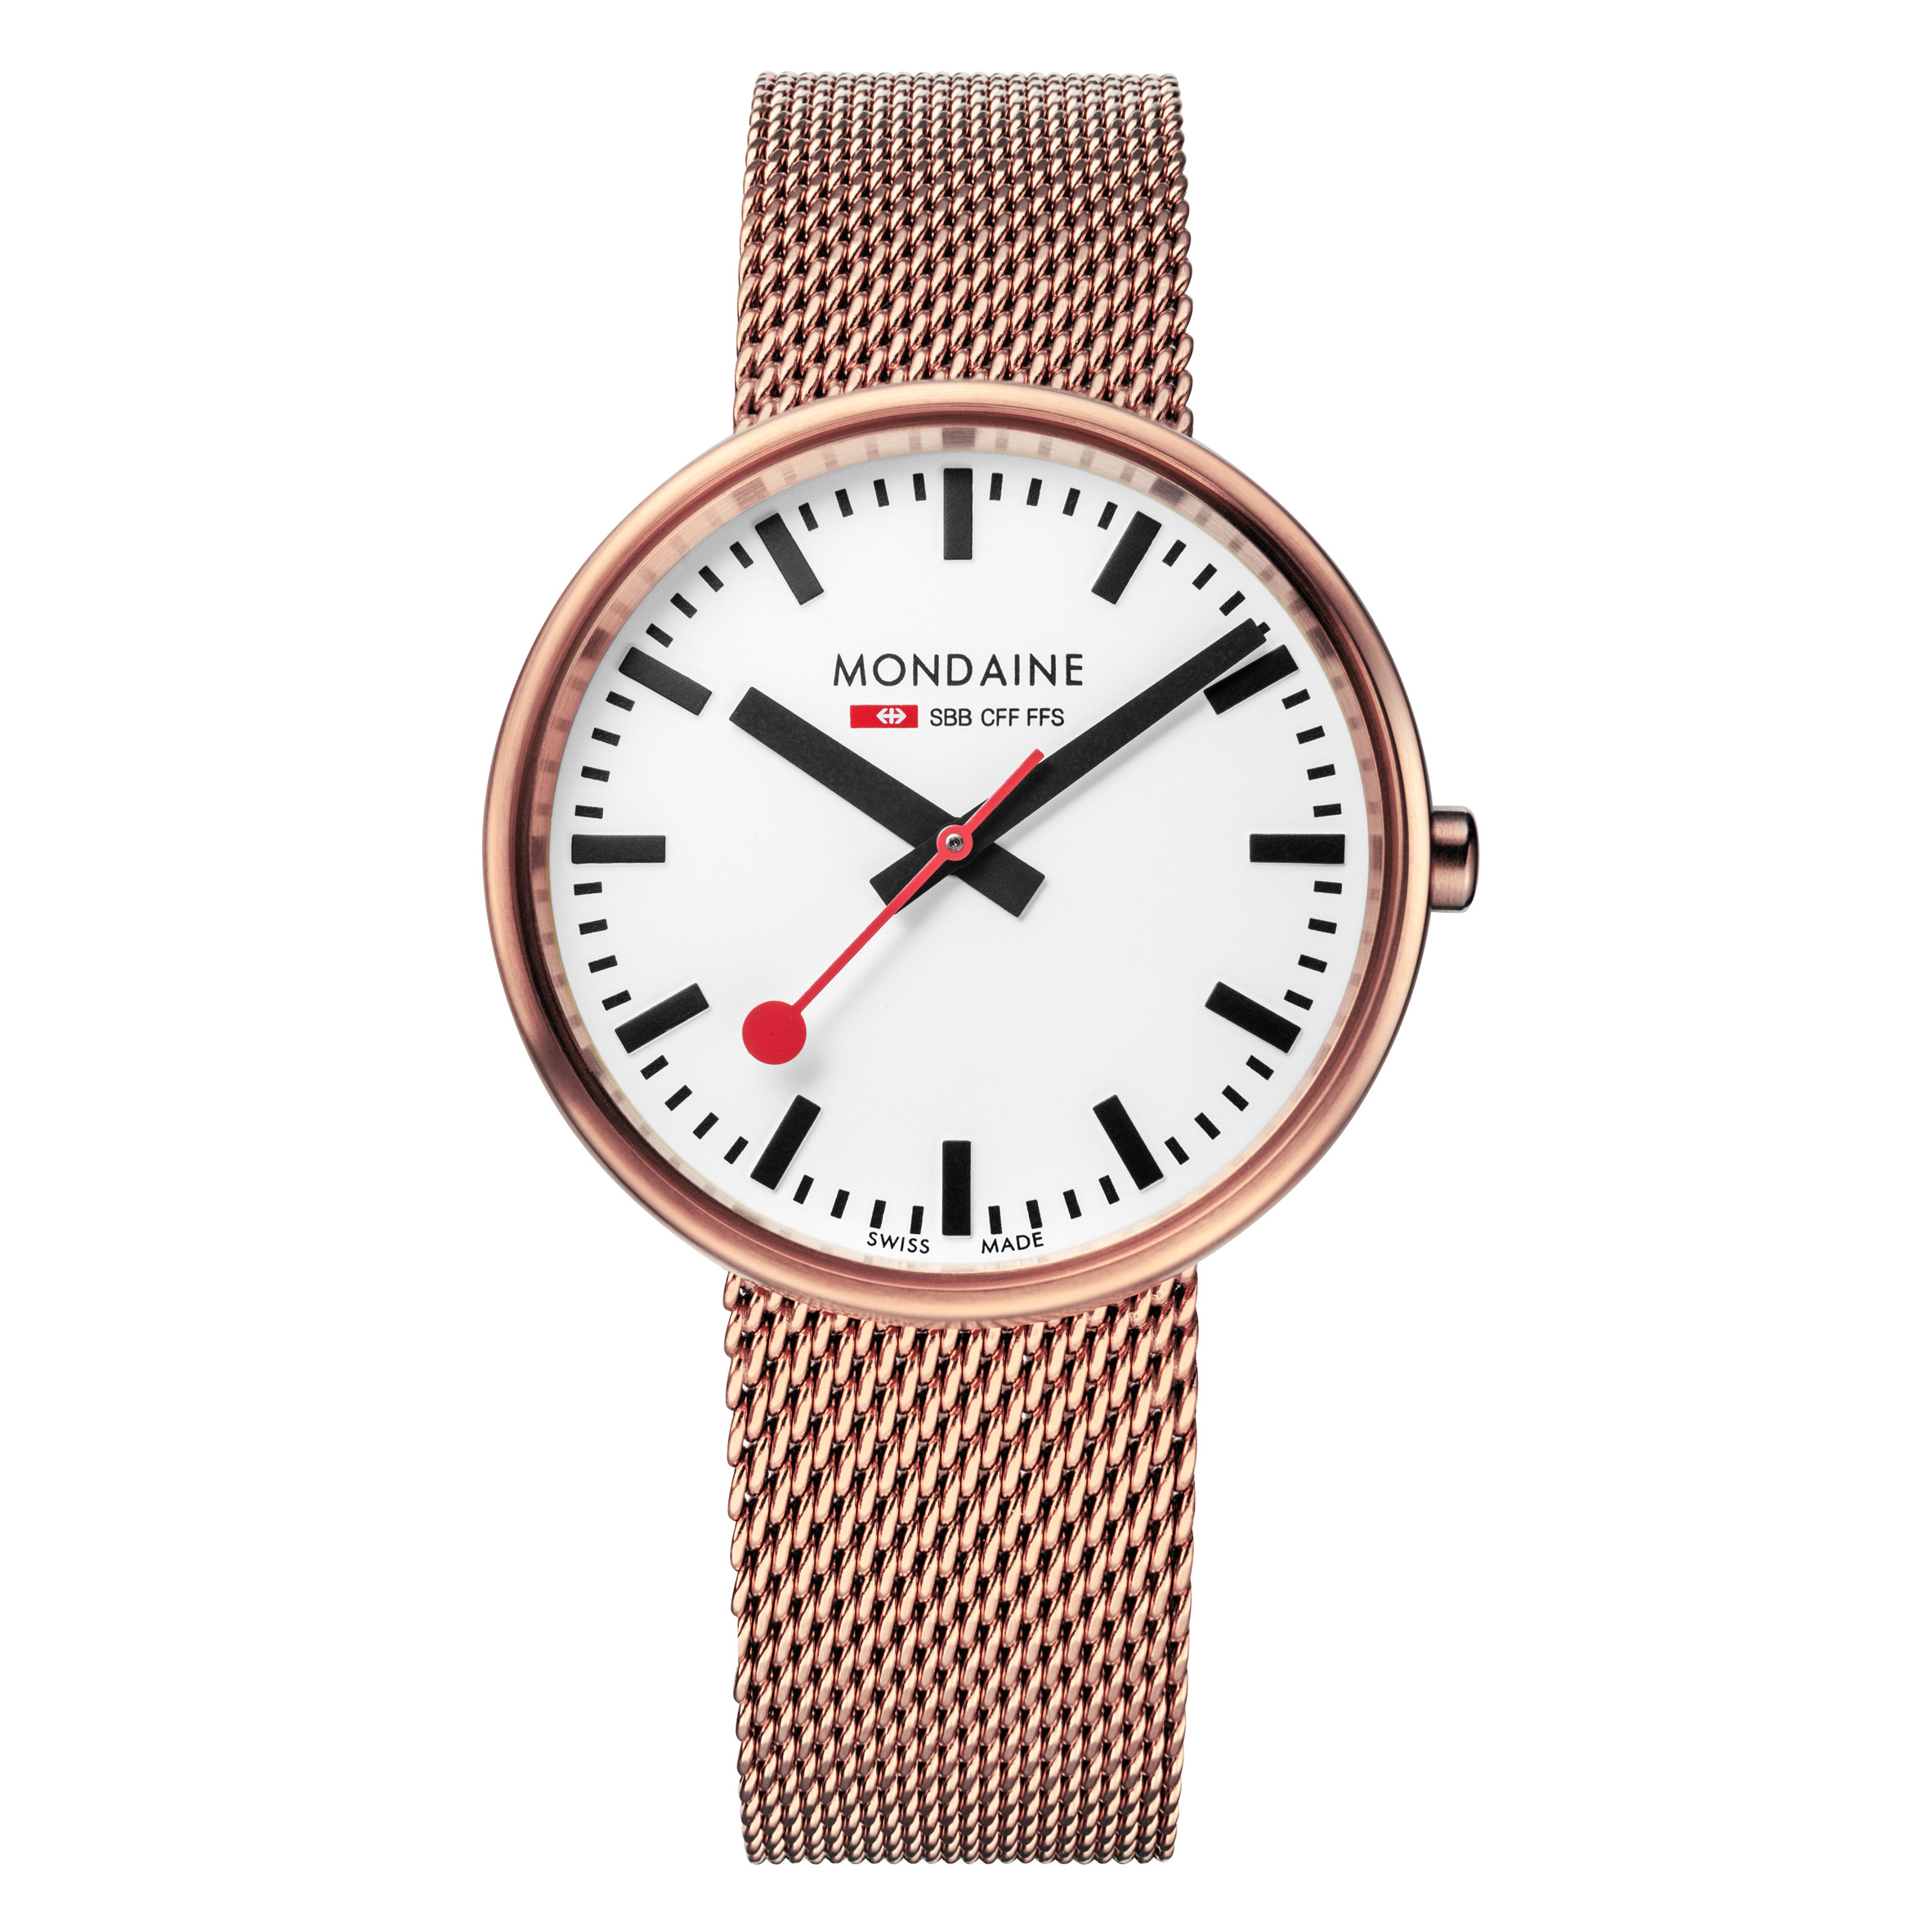 Mondaine adapts iconic Swiss Railways design to create contemporary timepiece